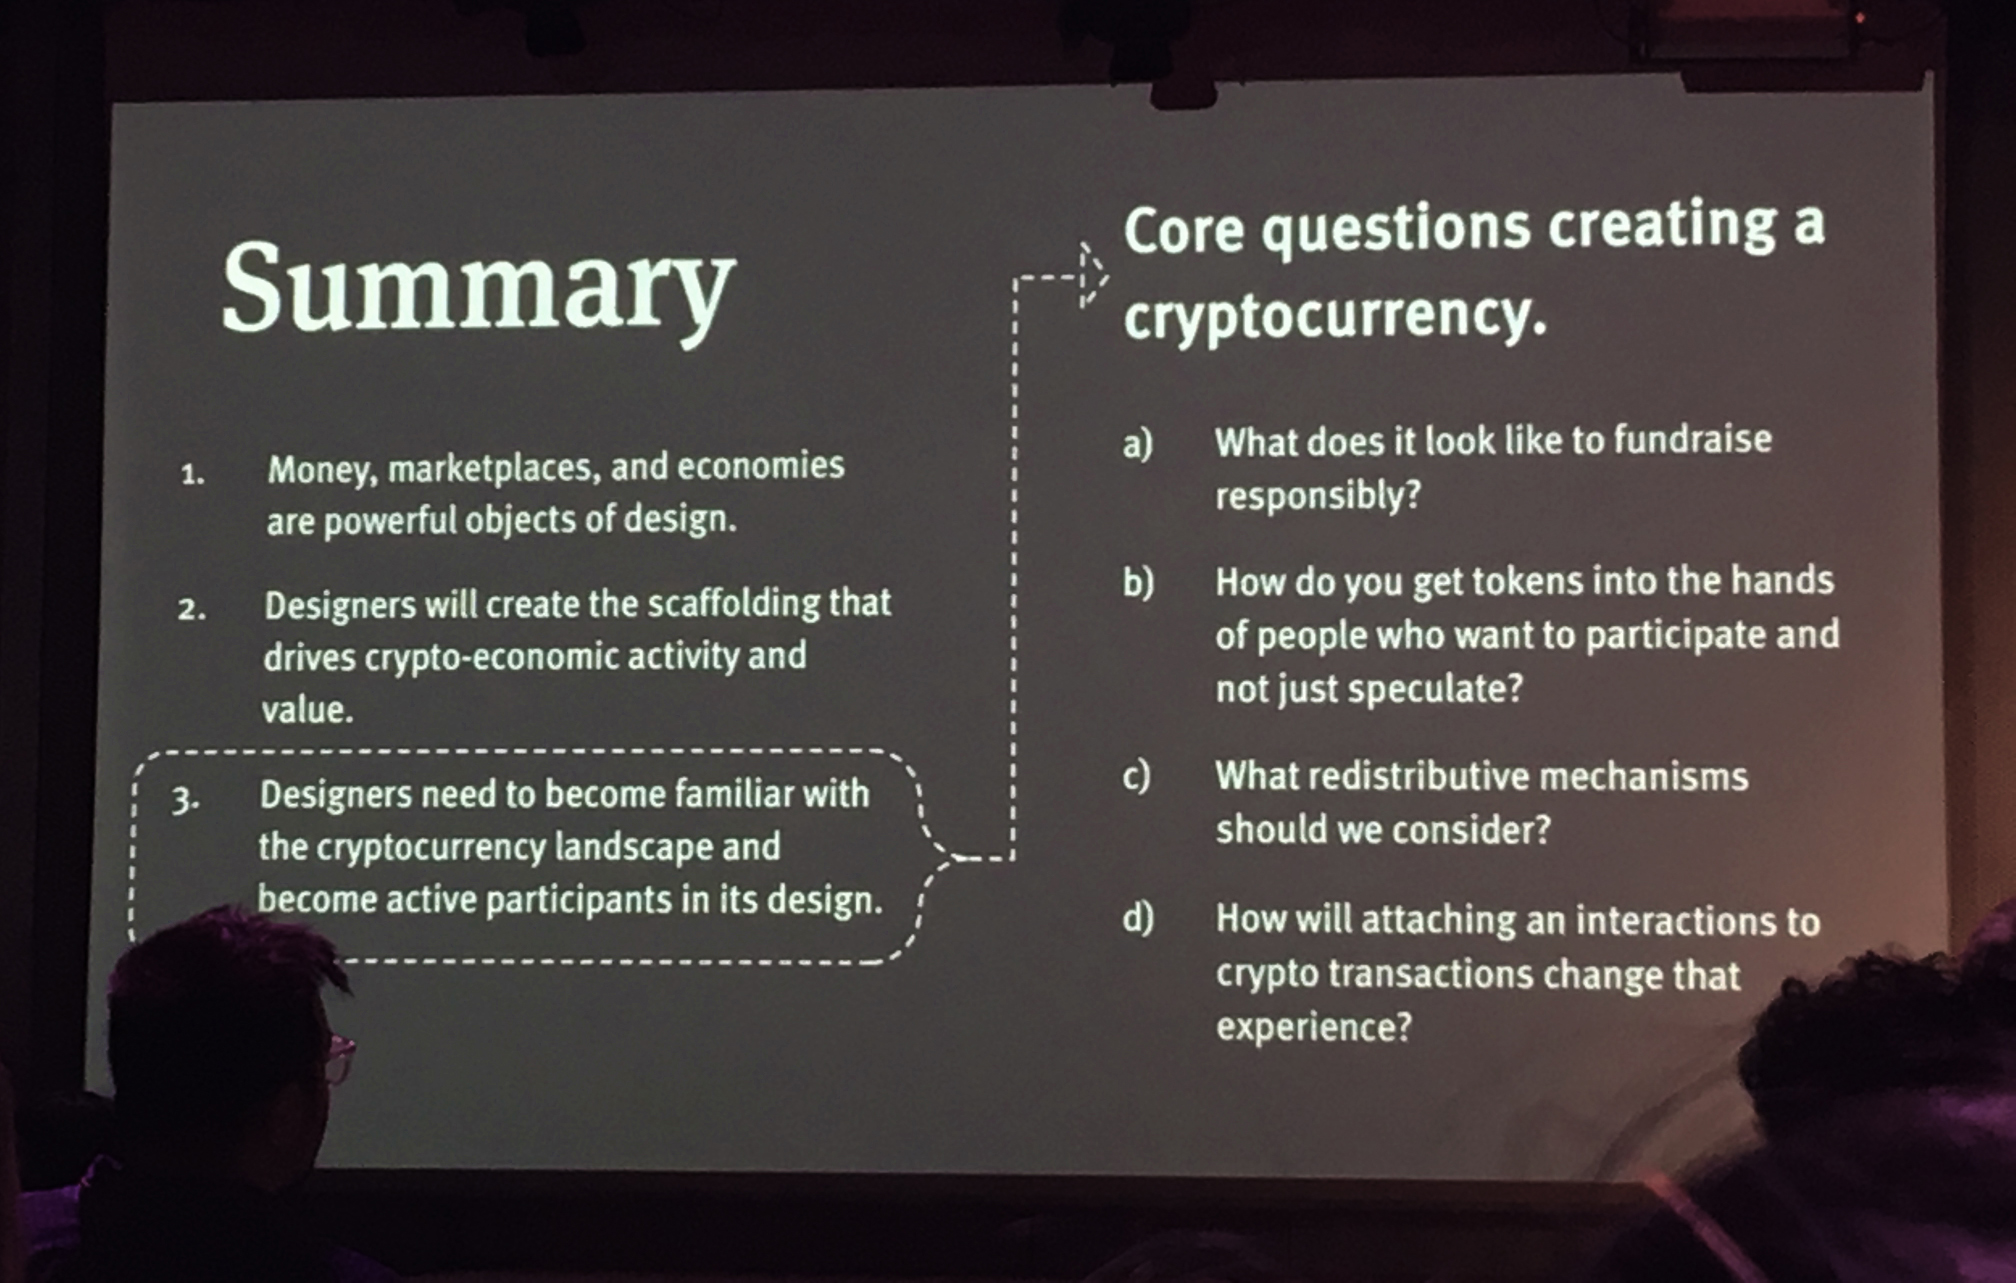 Core questions to ask when creating a cryptocurrency